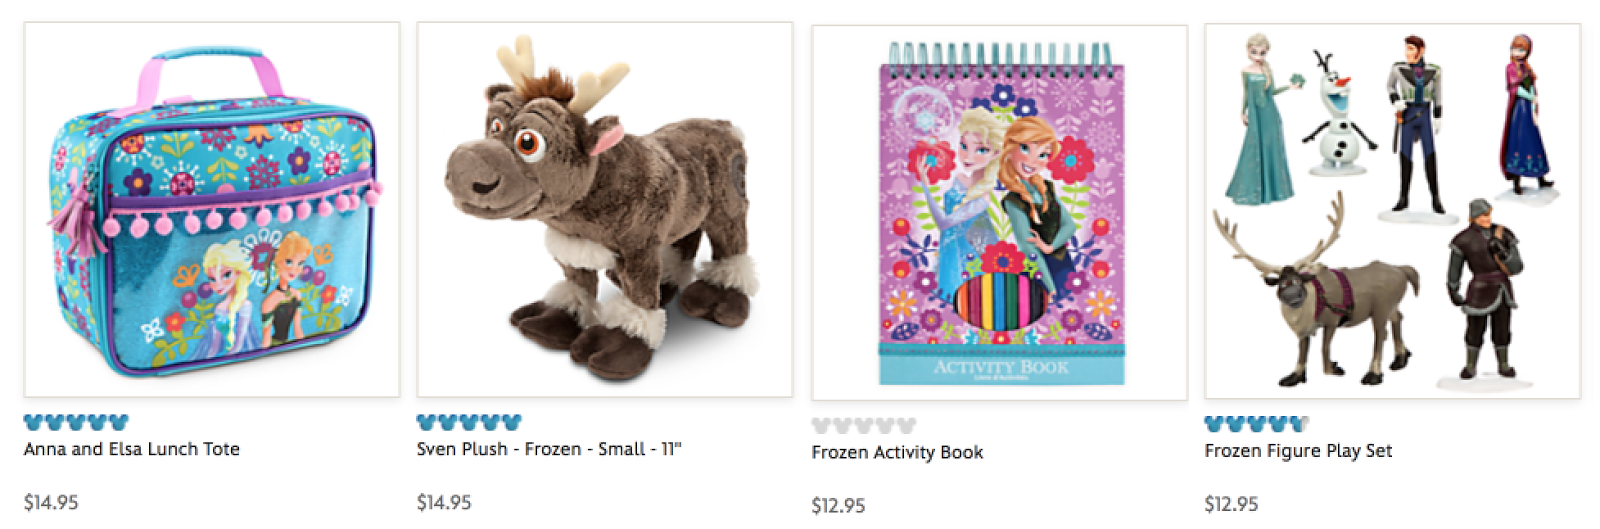 http://www.thebinderladies.com/2015/01/disneystore-free-shipping-on-any-disney.html#.VMwKD4fduyM